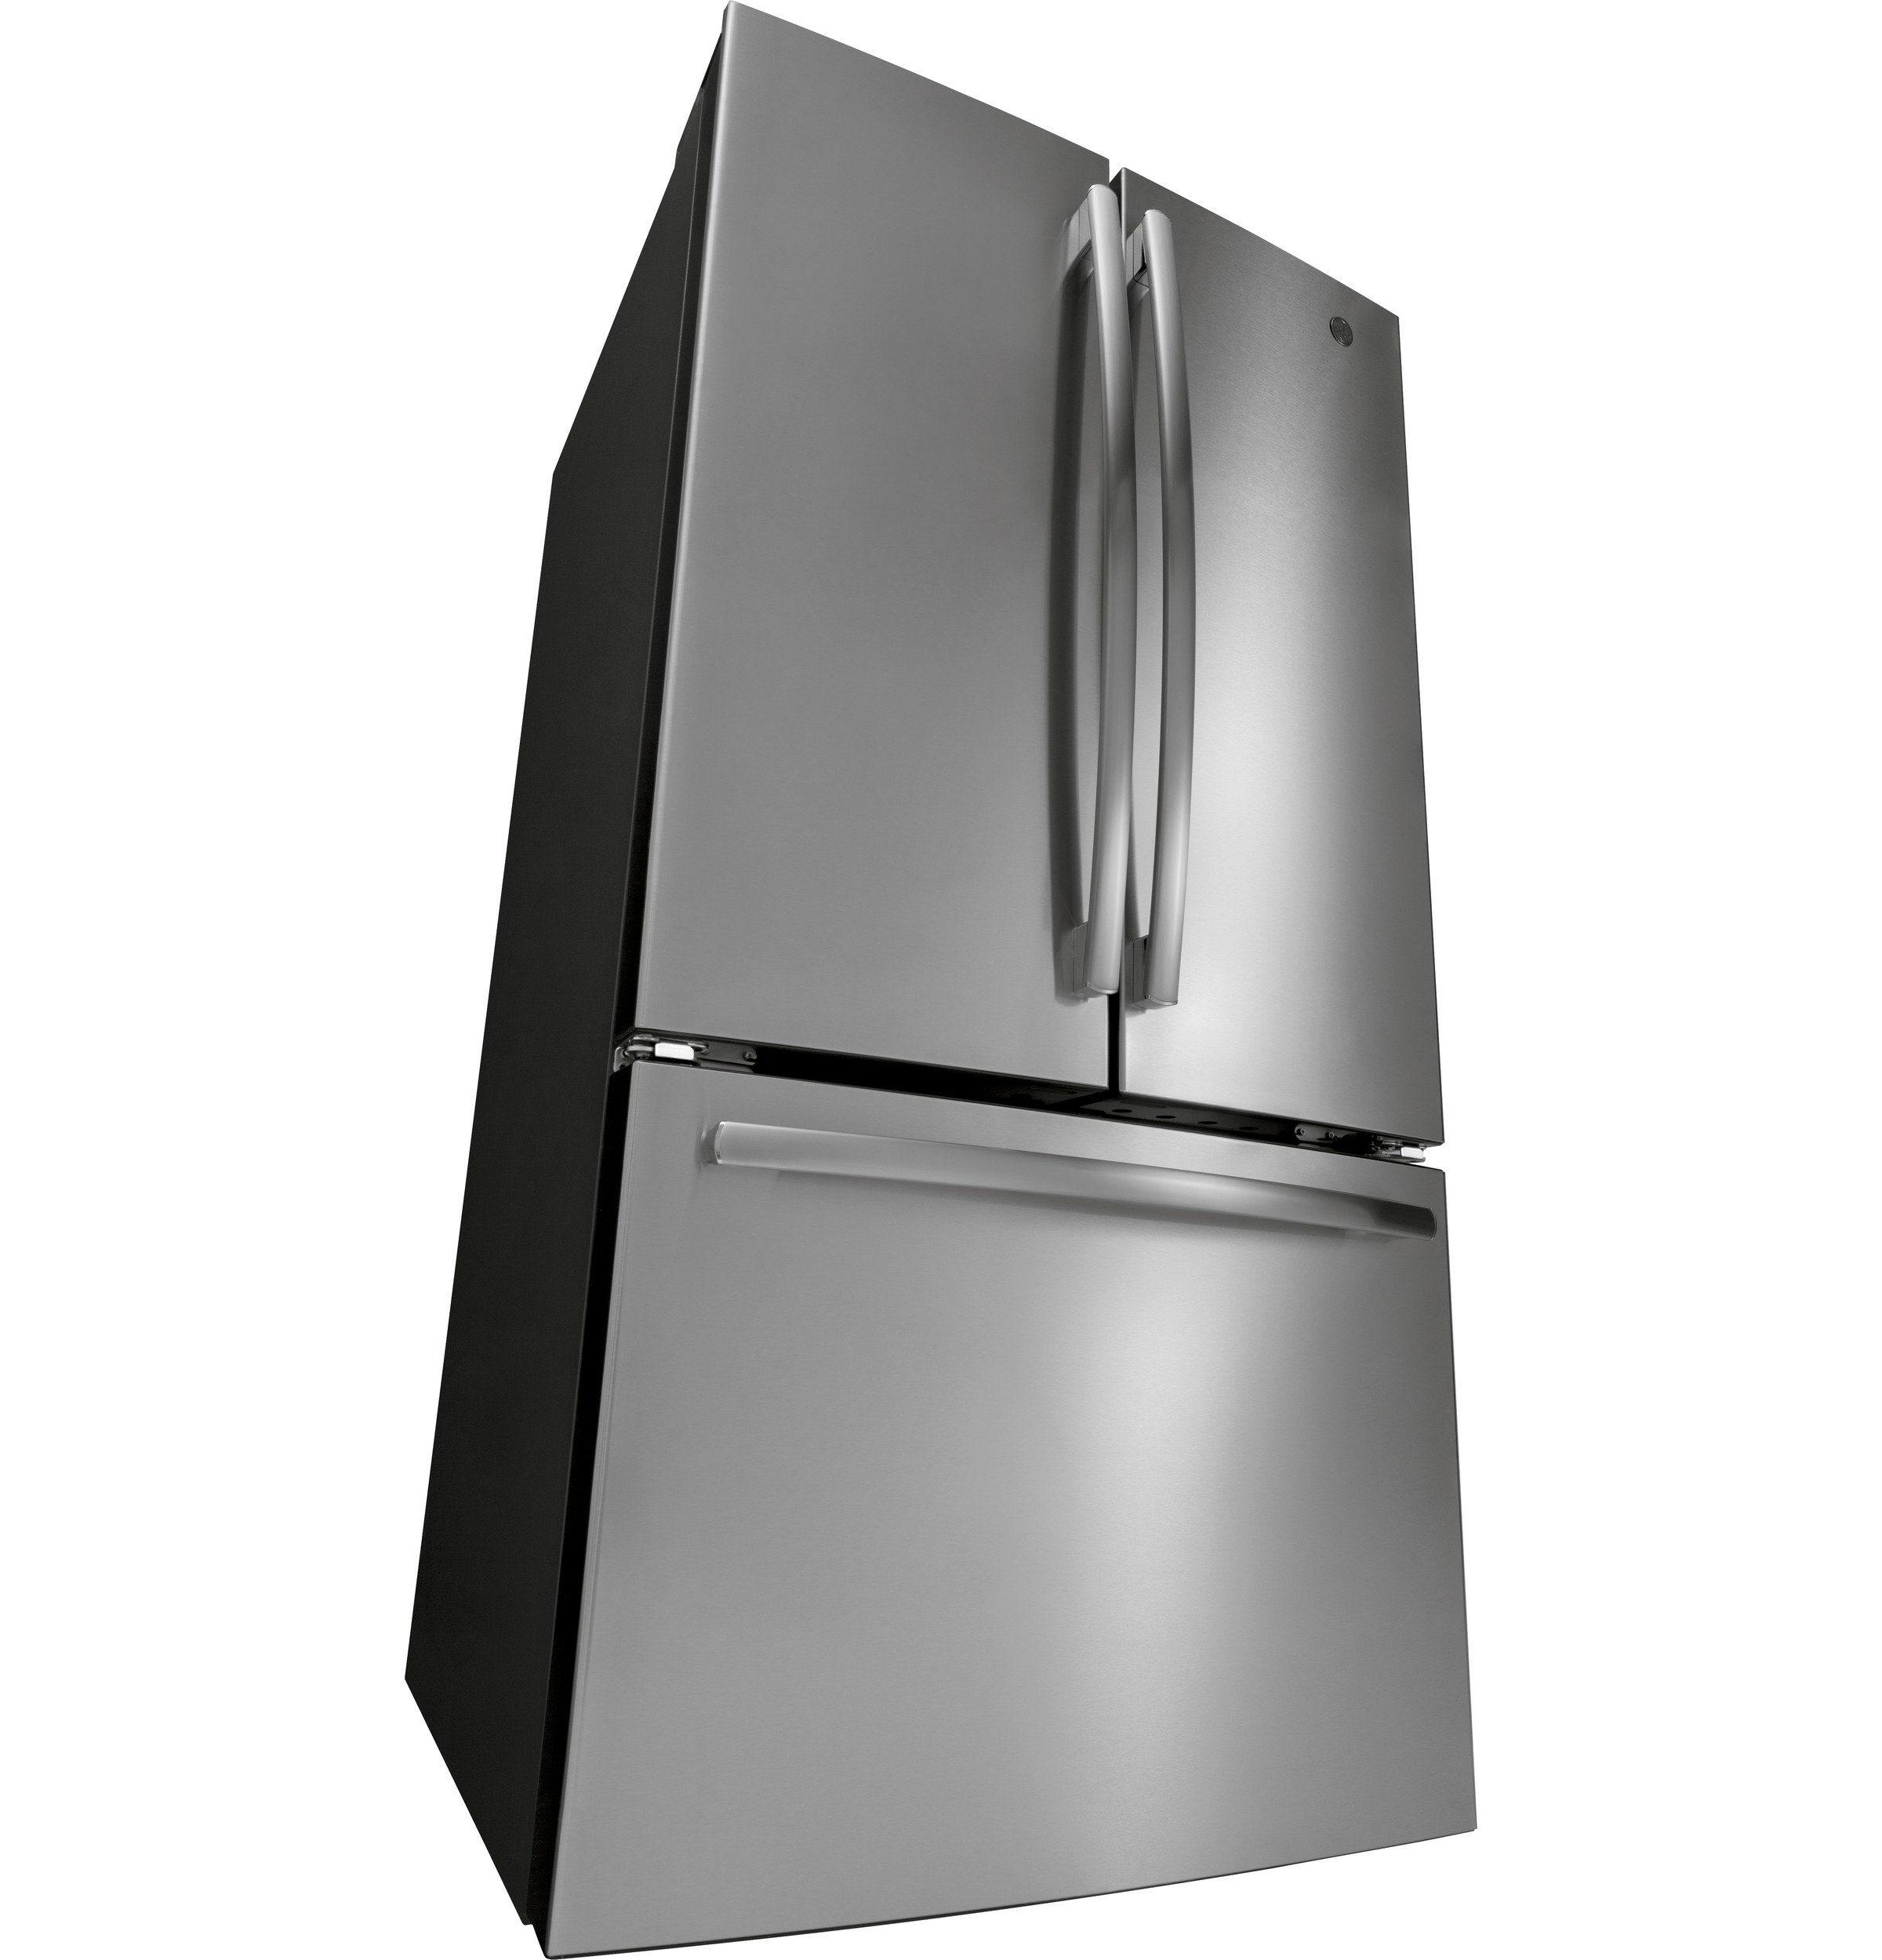 Model: GNE27JSMSS | GE® ENERGY STAR® 27.0 Cu. Ft. French-Door Refrigerator